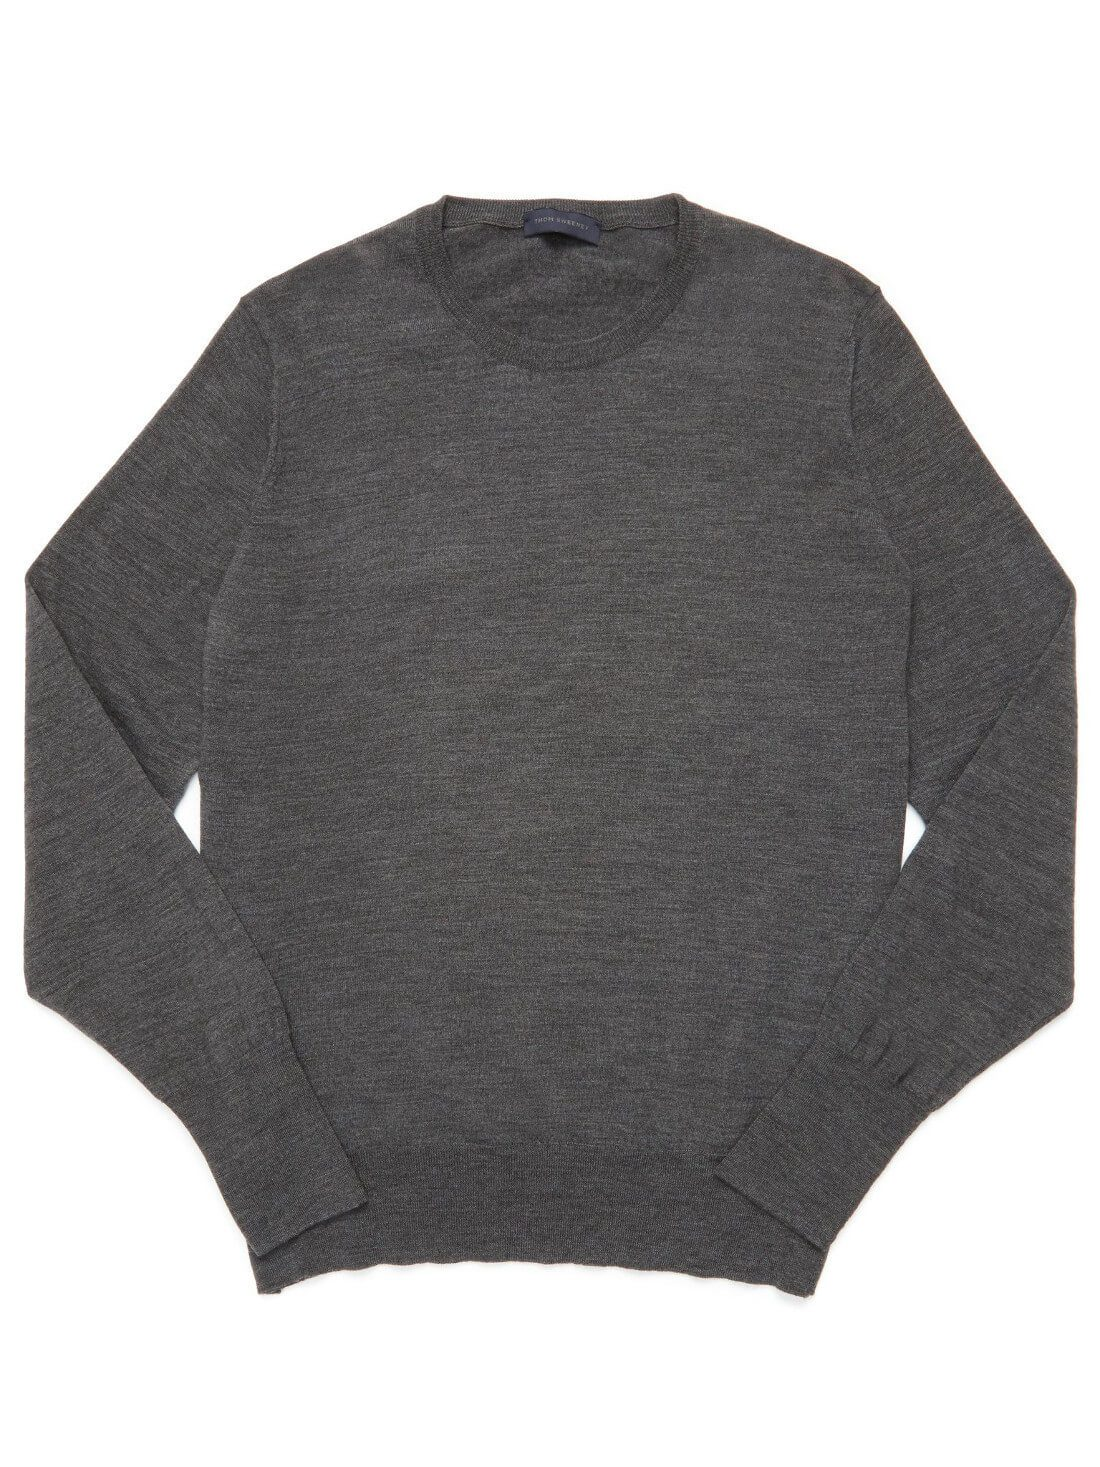 grey-mens-crew-neck-sweater-still-049_1_6fc53633-70a5-4a53-a5cc-c3eeb1be6103